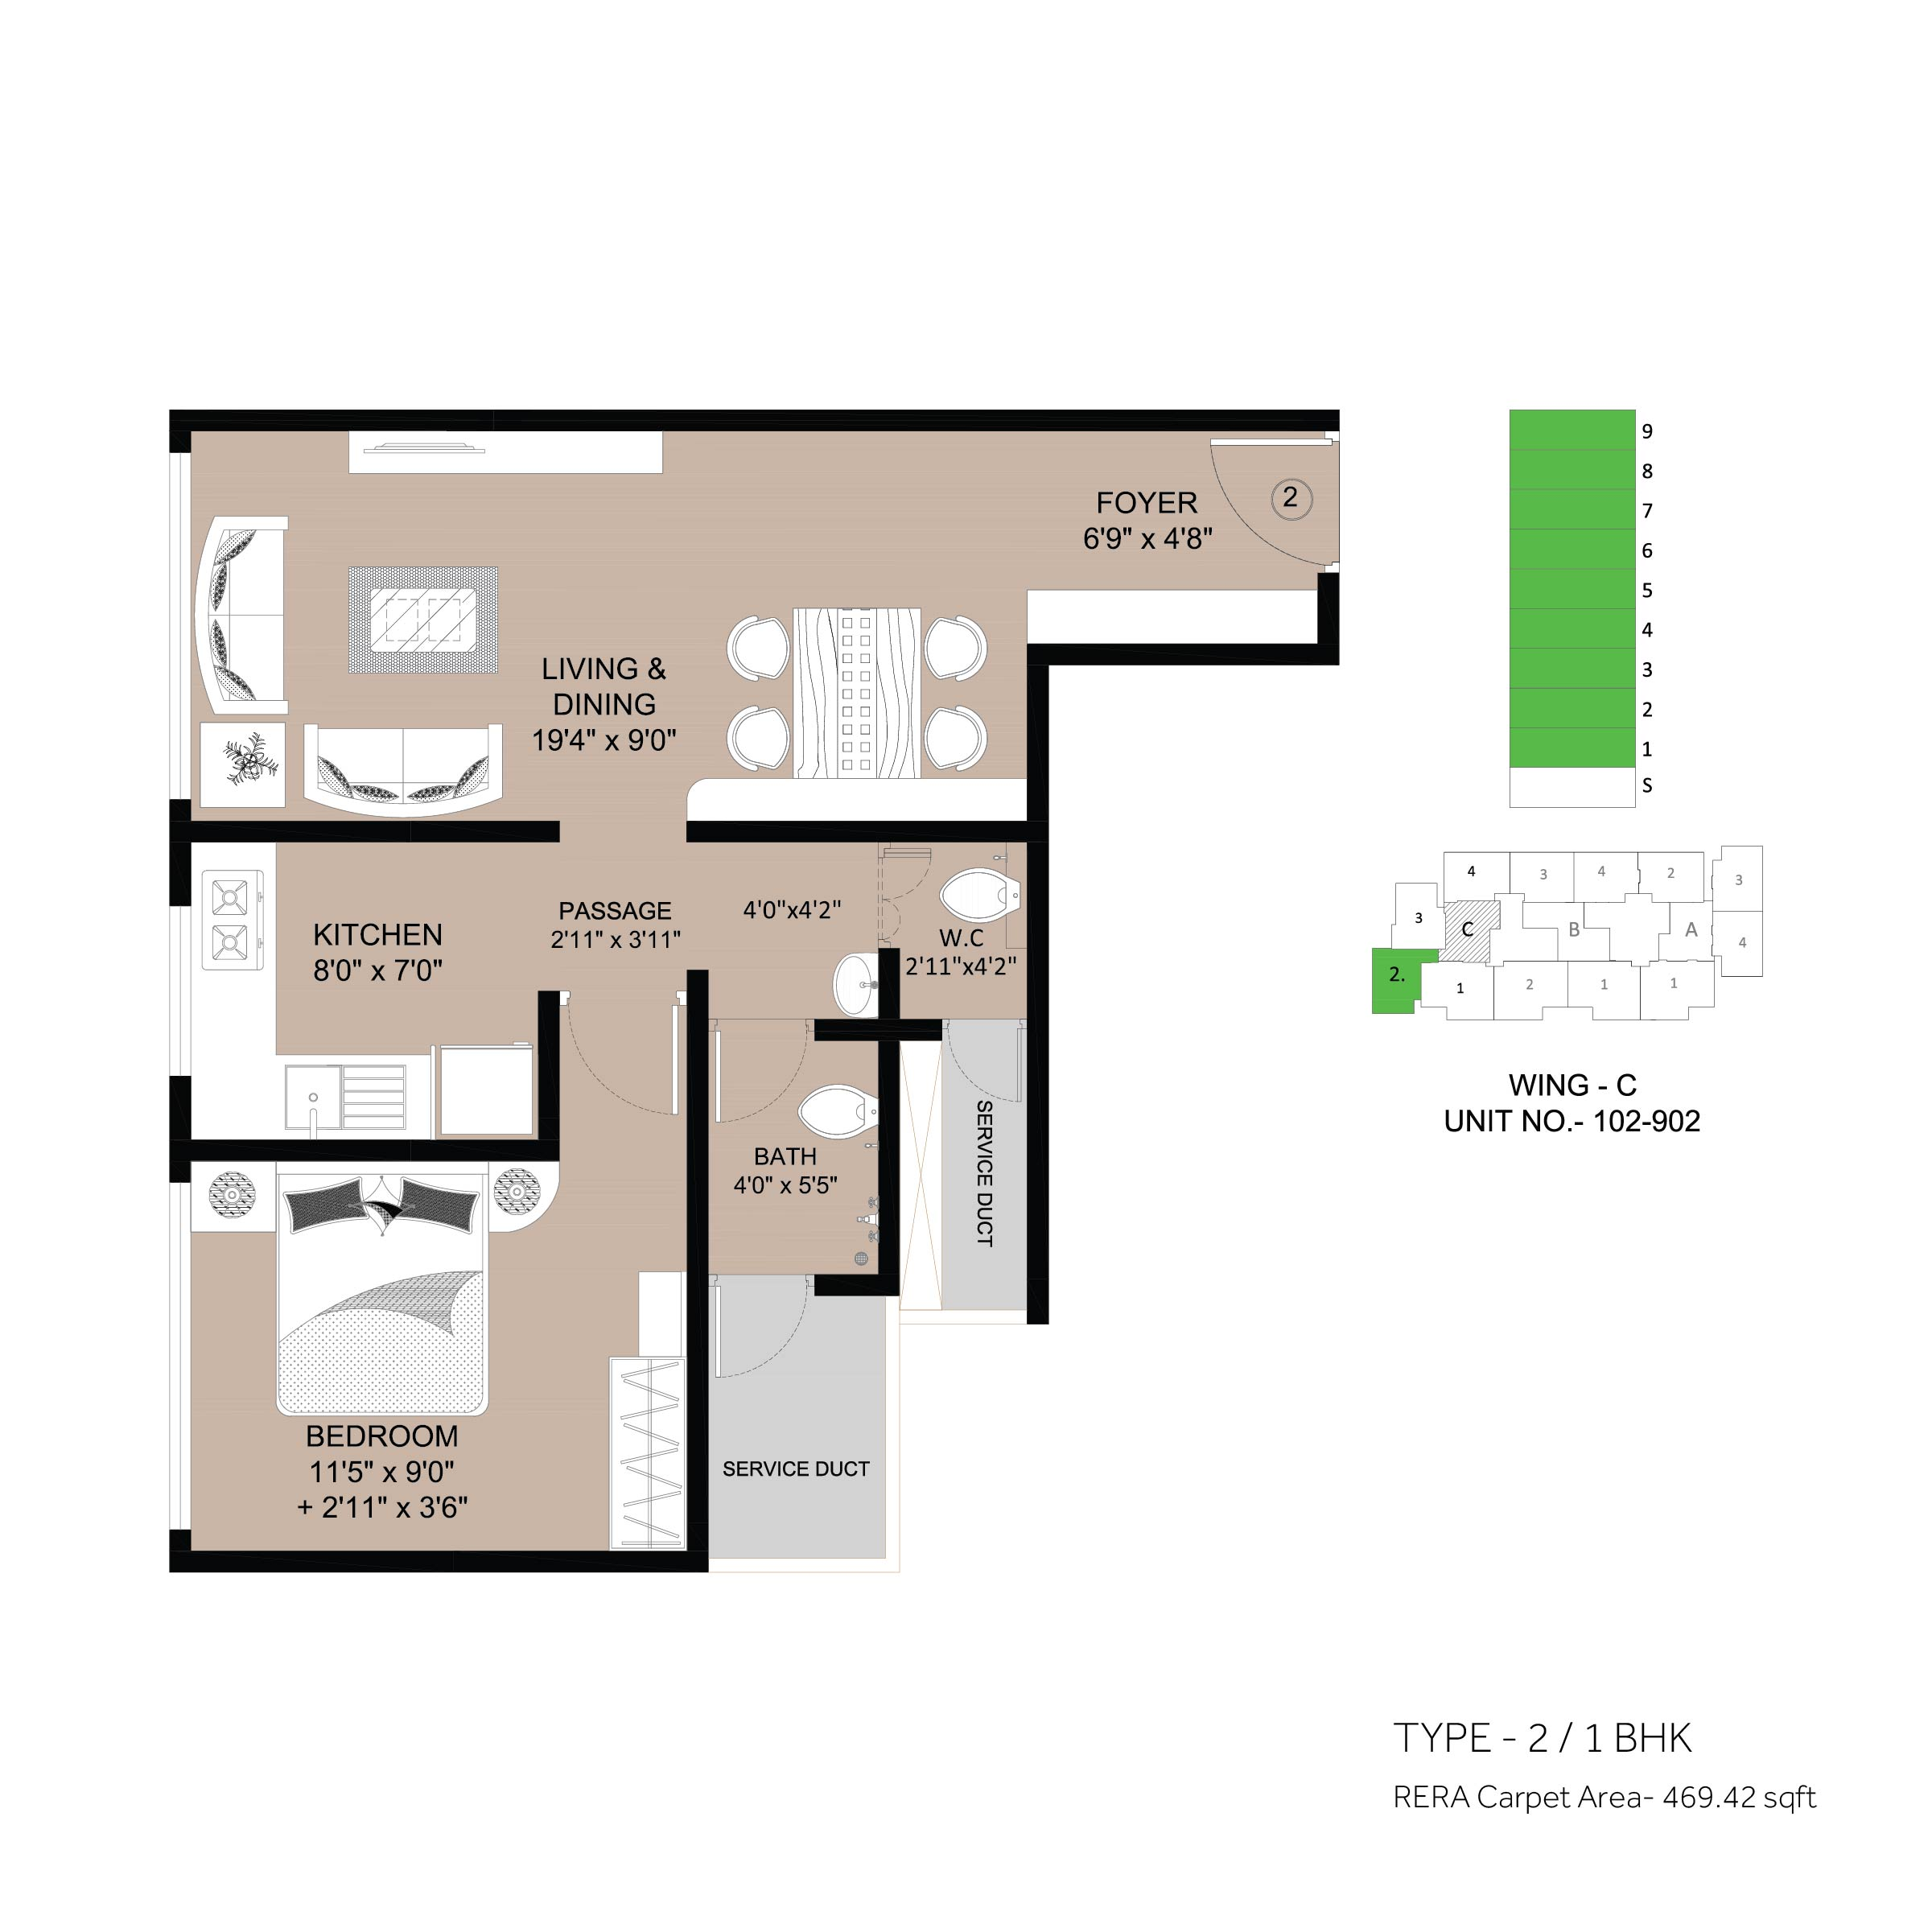 floor plan 1 BHK